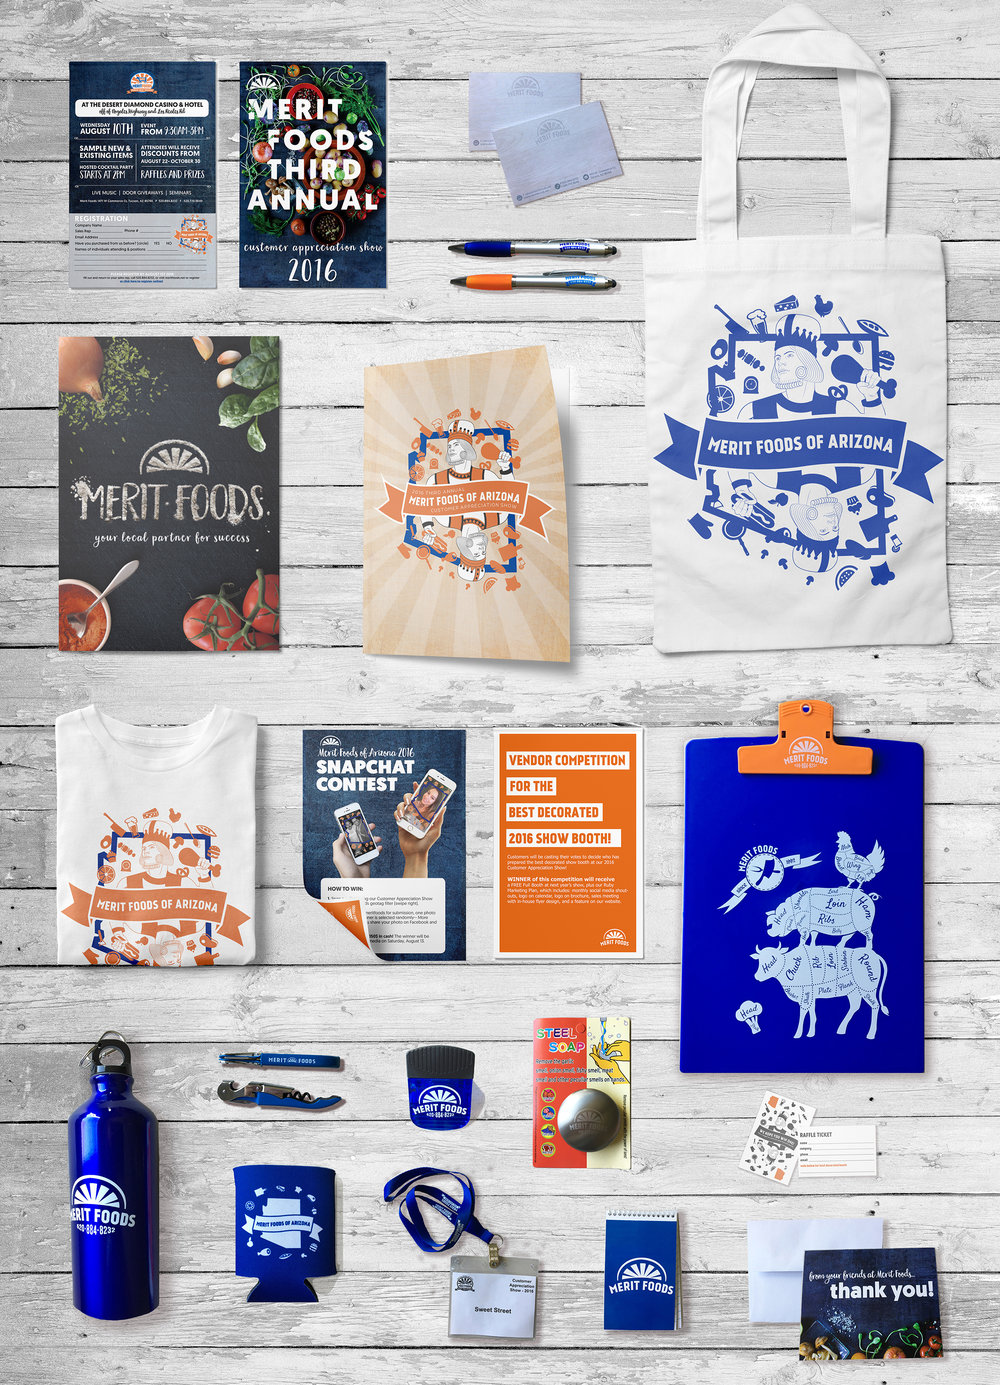 3RD ANNUAL MERIT FOODS CUSTOMER APPRECIATION SHOW   Here is the result of the 2016 trade show design + collateral. (event planning, digital and print marketing, photography, photoshop, illustrator, indesign, and mockup design)    Please click here to see the details of this extensive project!